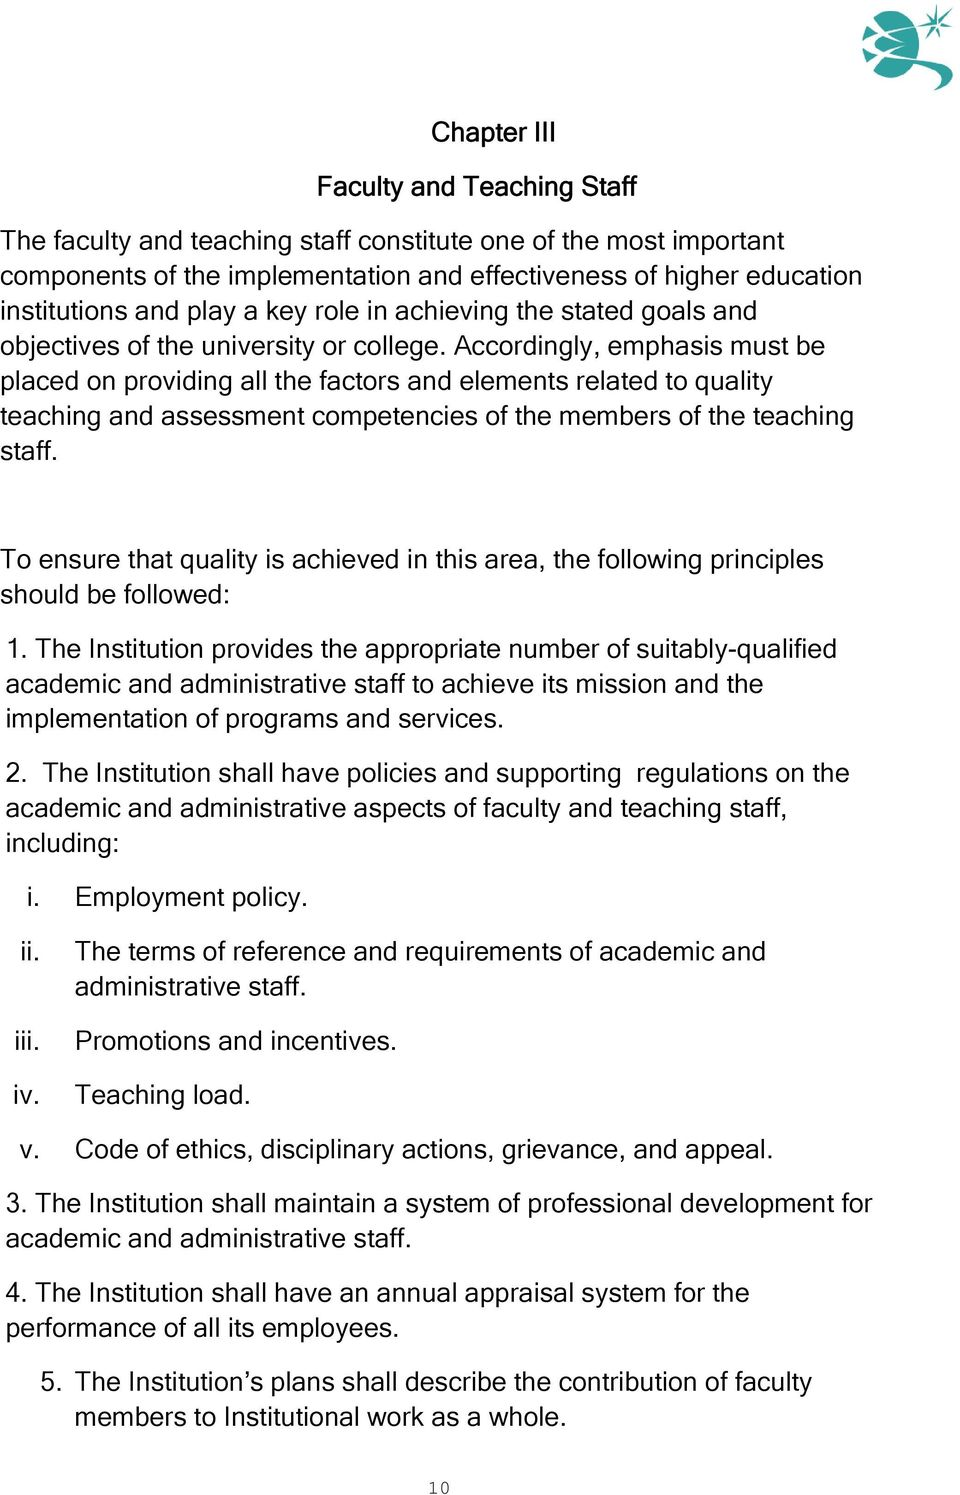 Accordingly, emphasis must be placed on providing all the factors and elements related to quality teaching and assessment competencies of the members of the teaching staff.